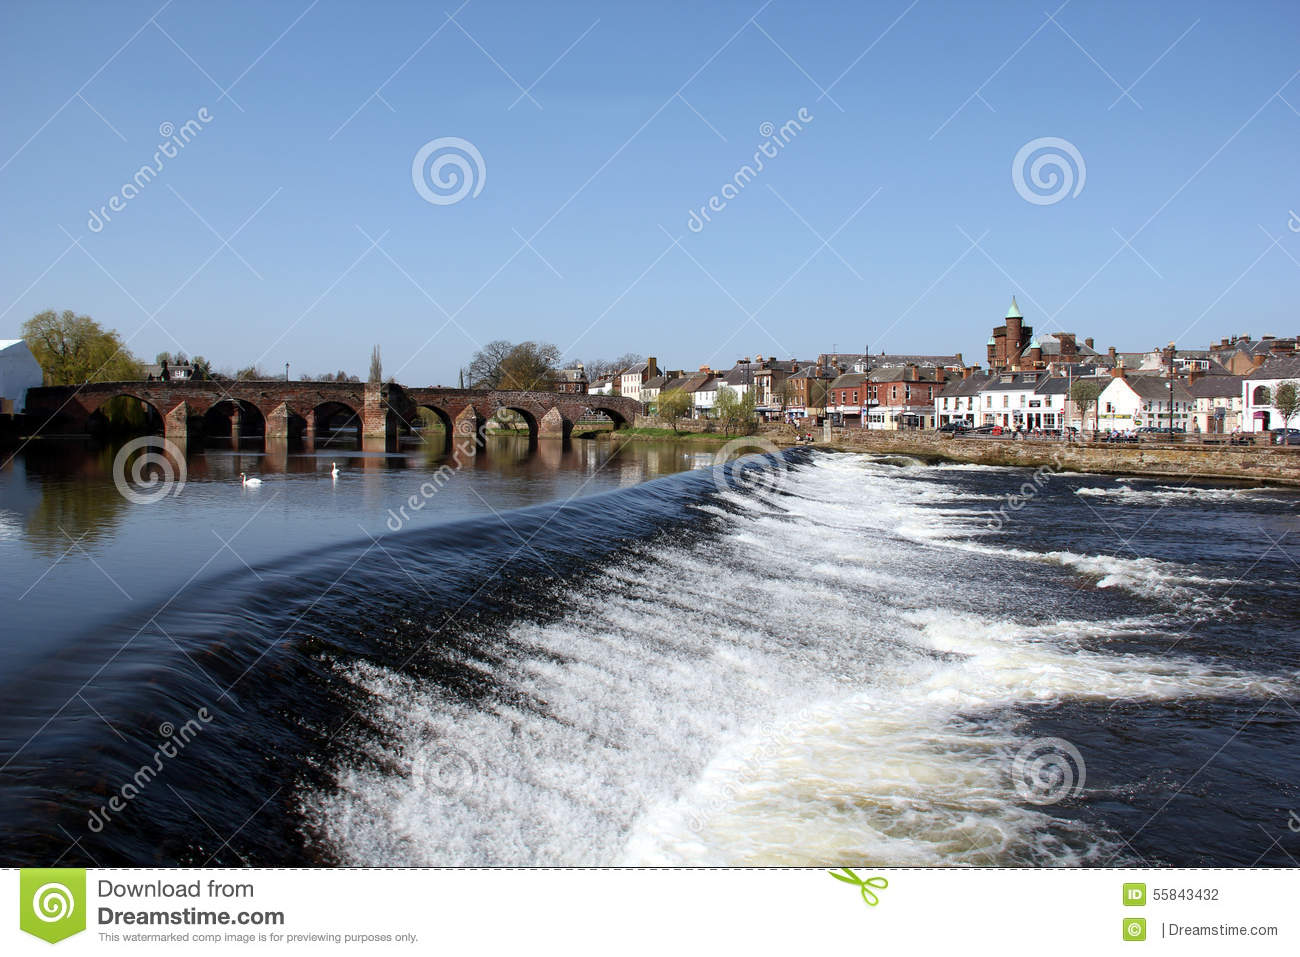 River Nith at Dumfries, Scotland.